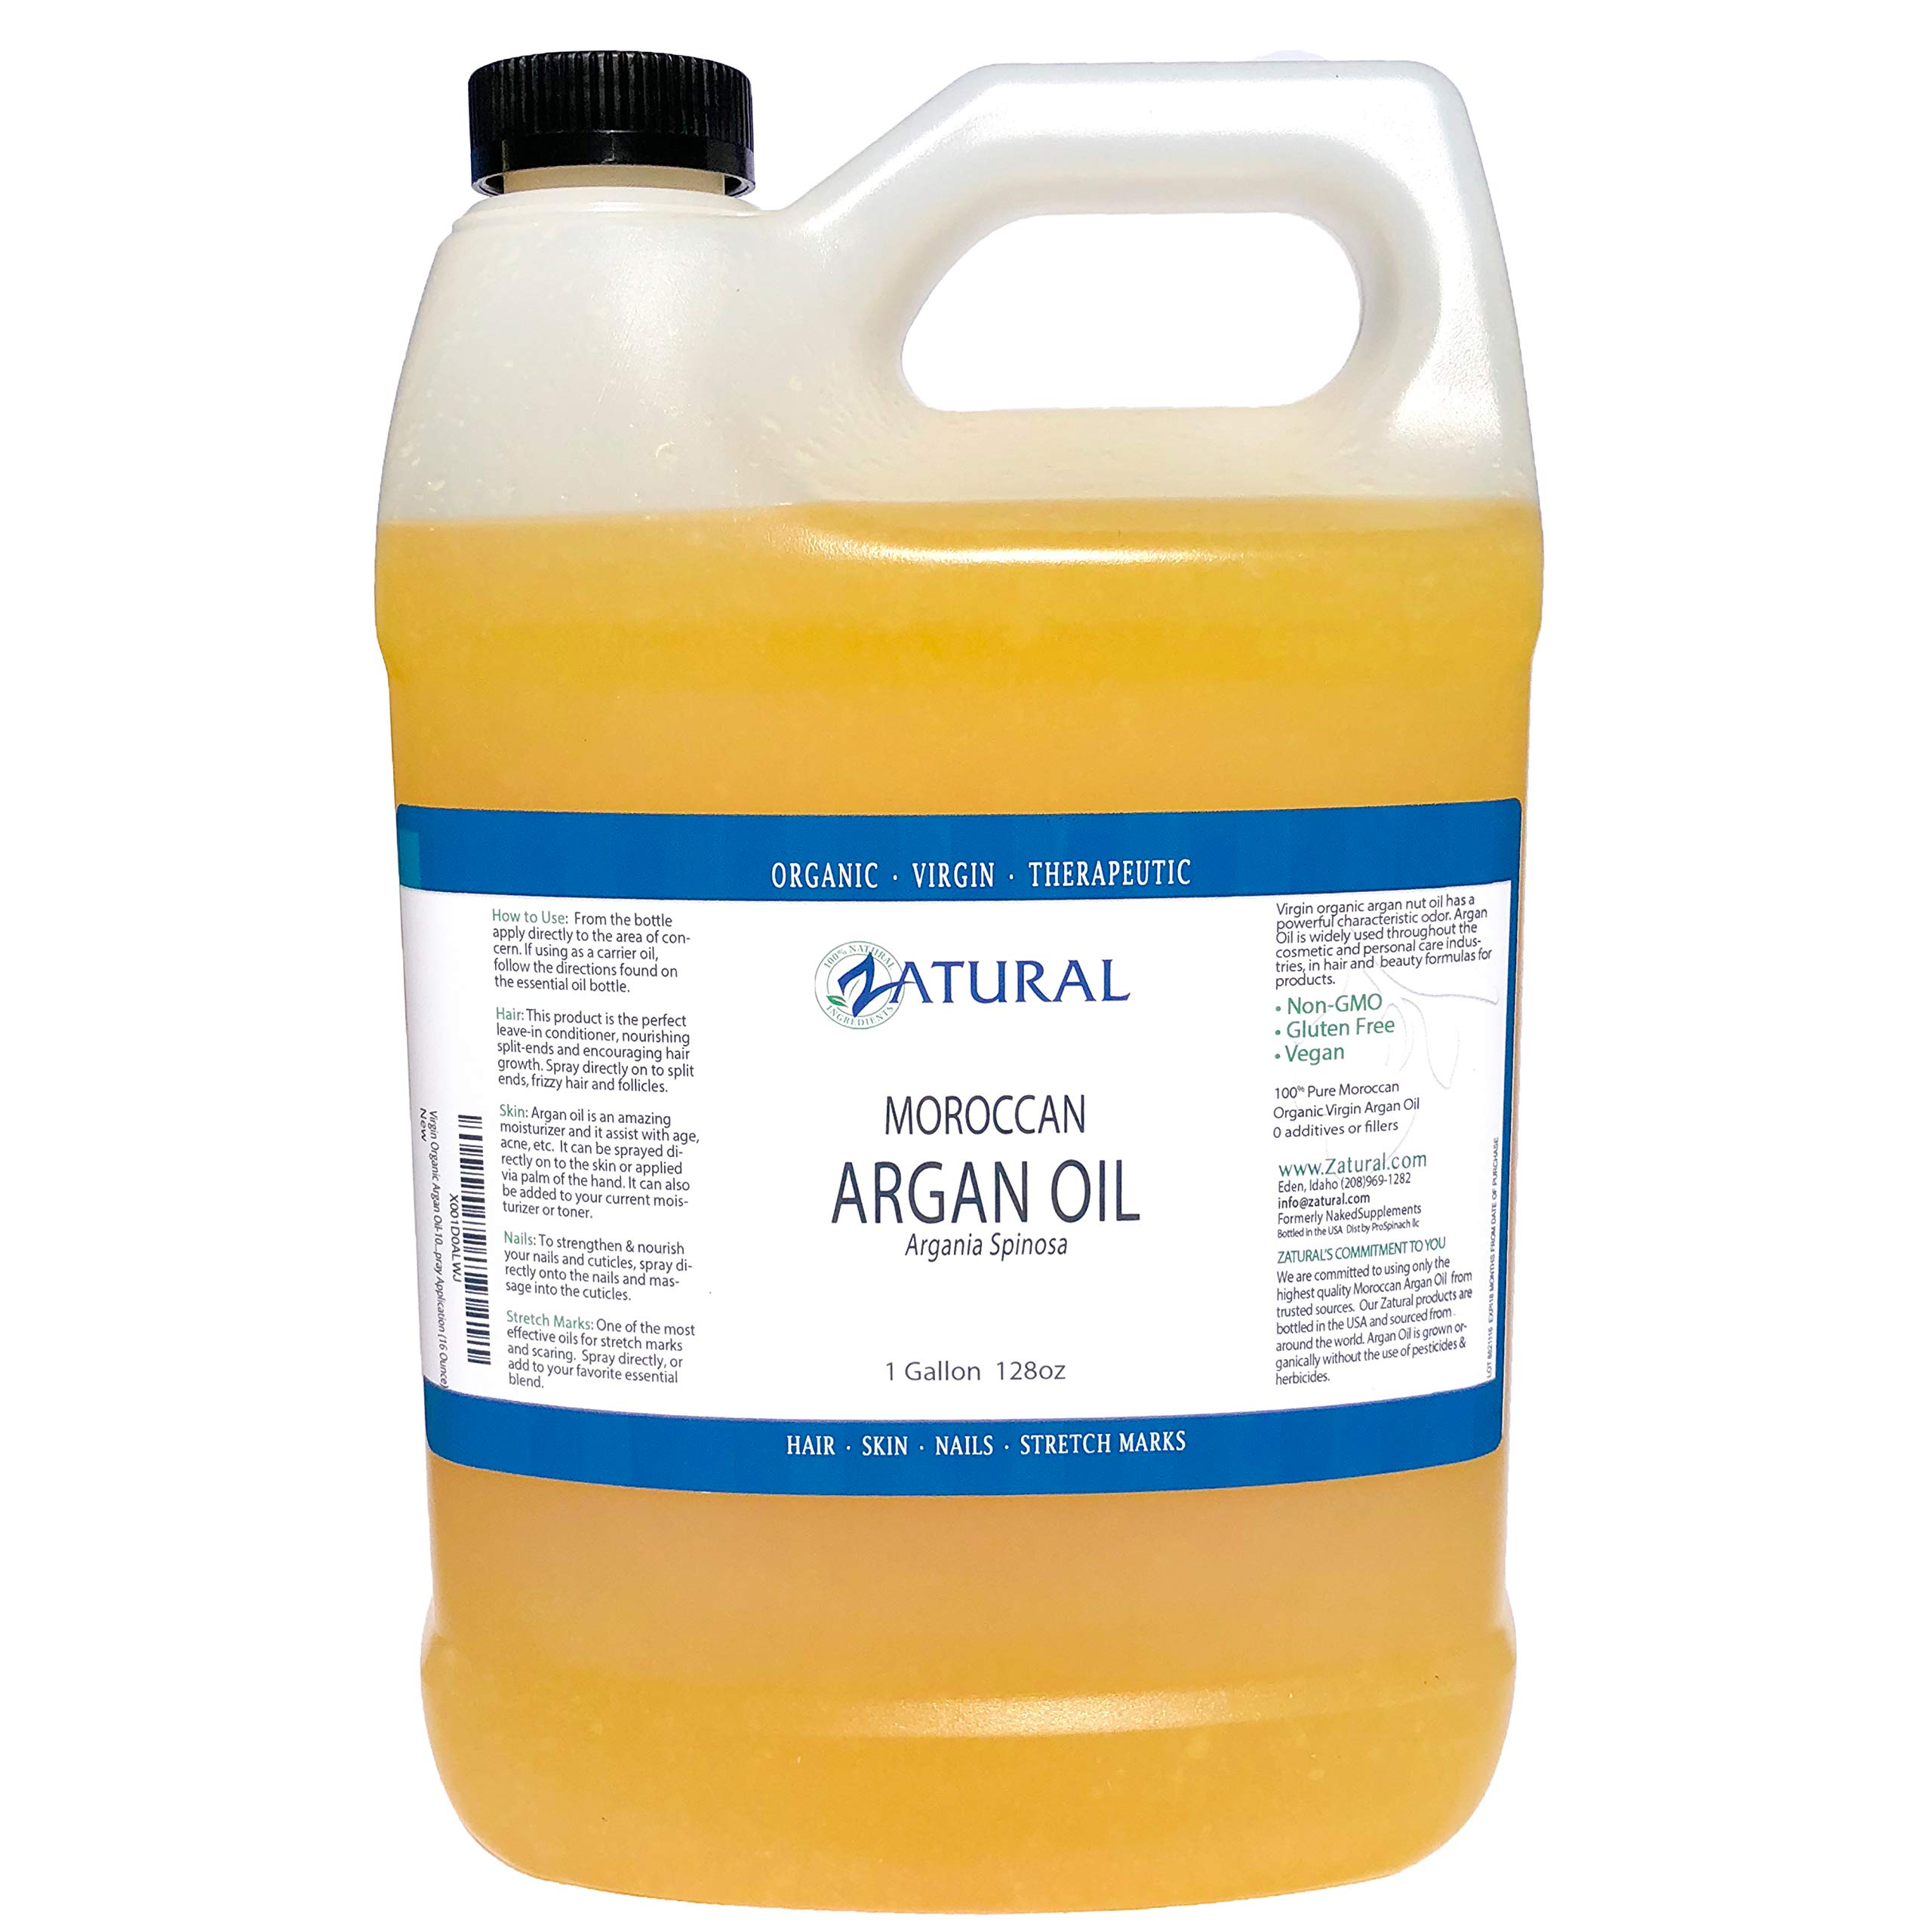 Virgin Organic Argan Oil-100% Pure Virgin Organic Argan Oil, Easy Spray Application (128 Ounce (1 Gallon))